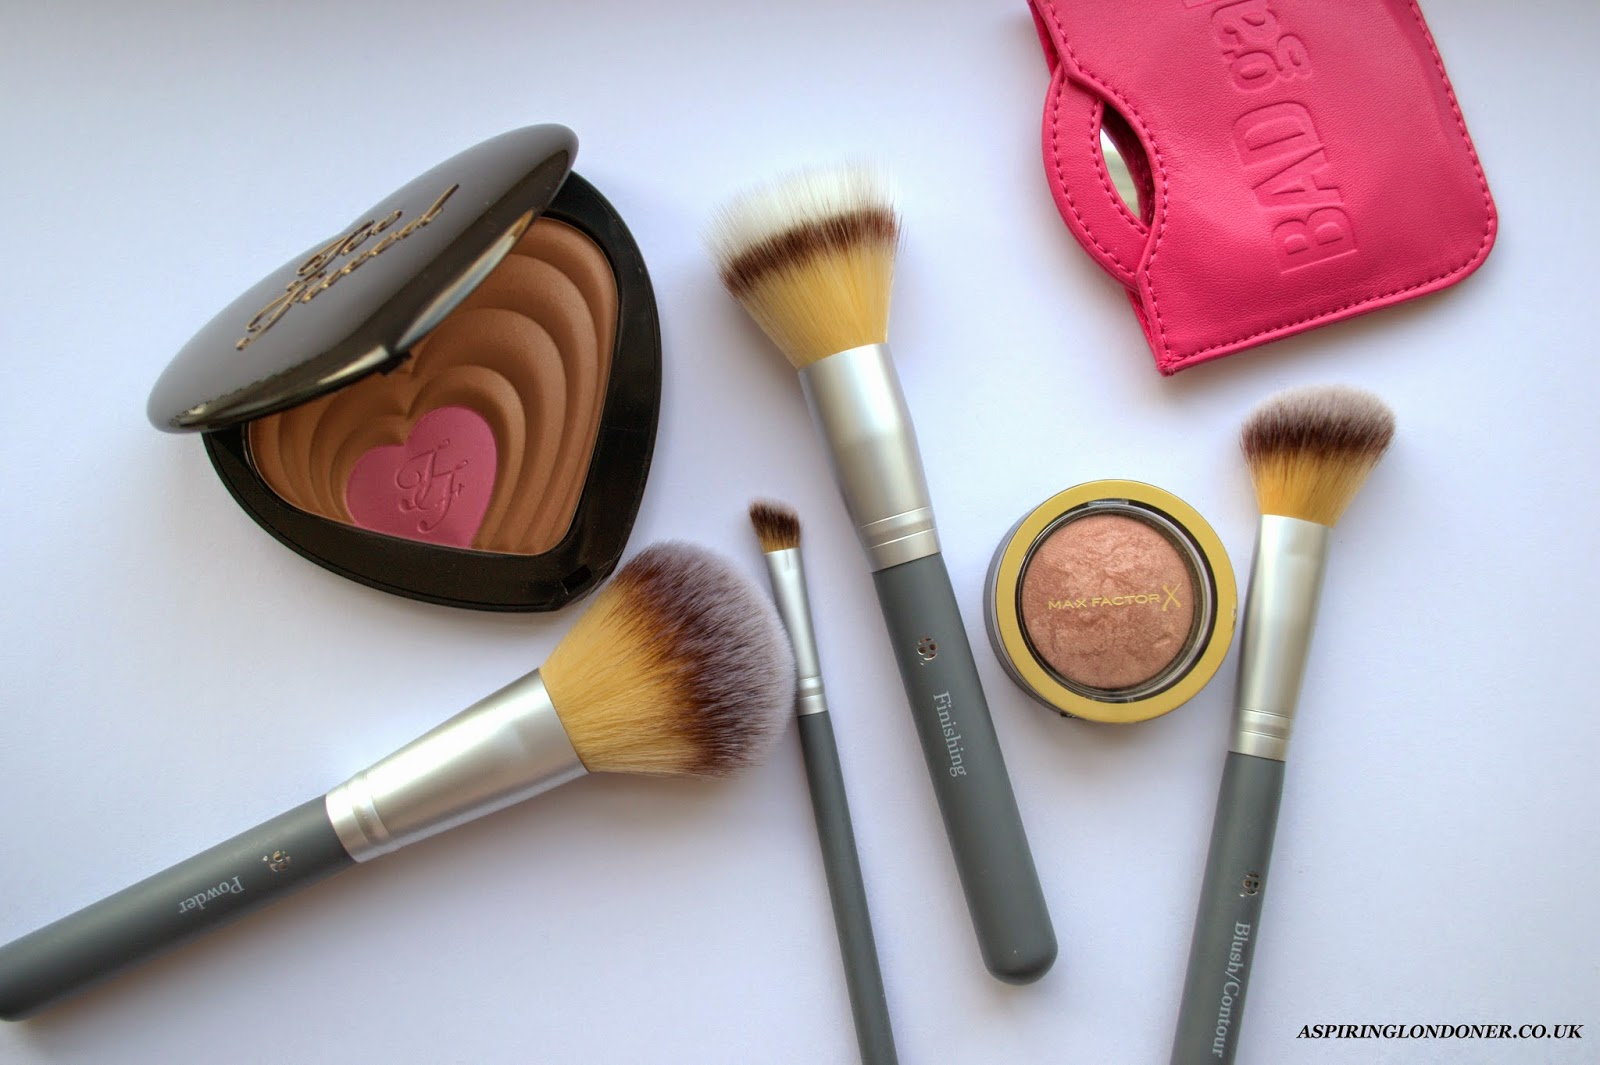 Budget Buy Superdrug B Beauty Brush Review - Aspiring Londoner